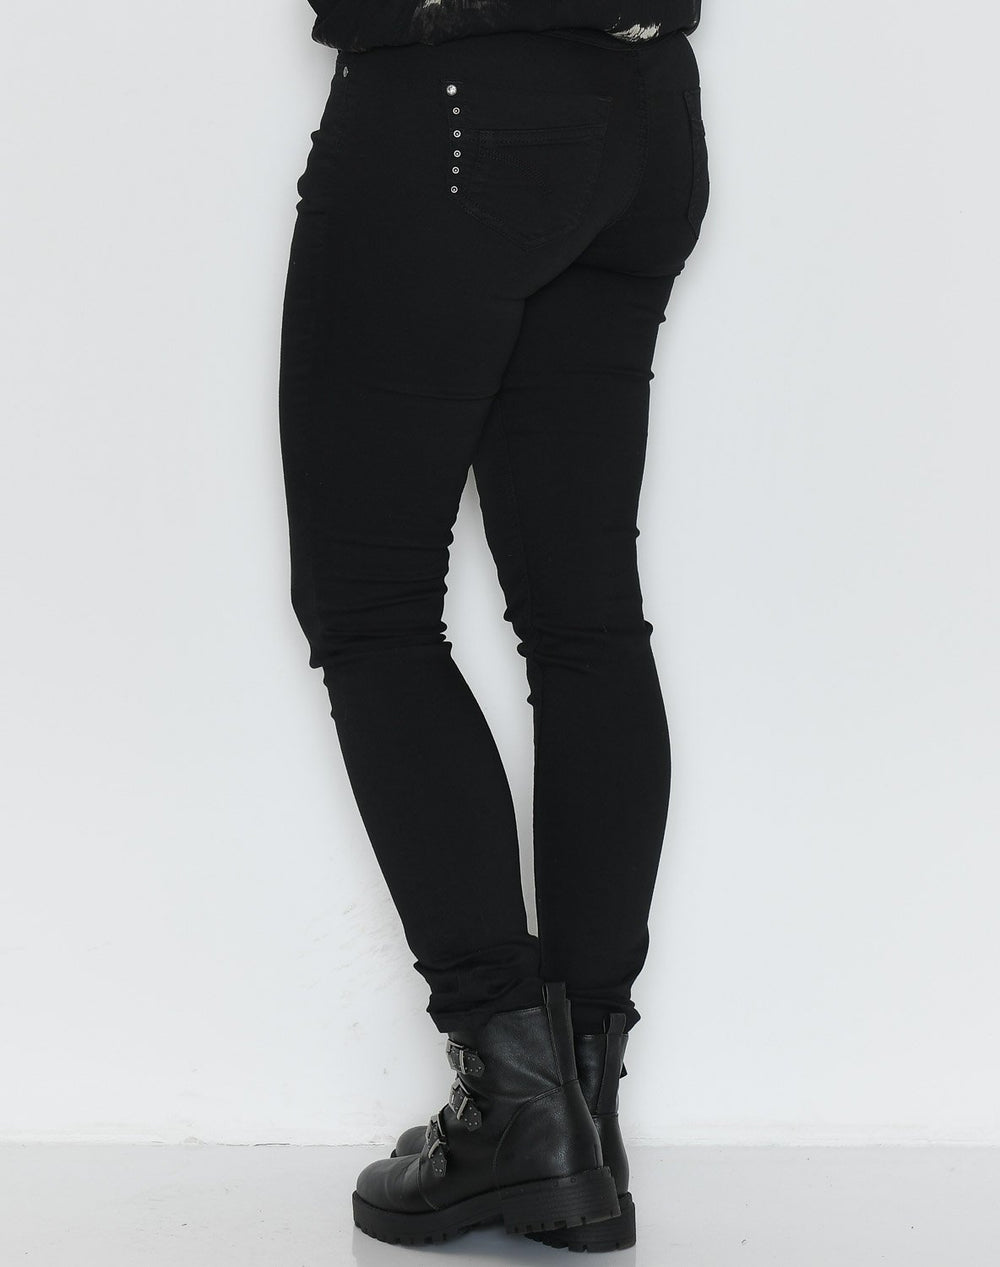 Culture Cajsa Jeannina pant black - Online-Mode